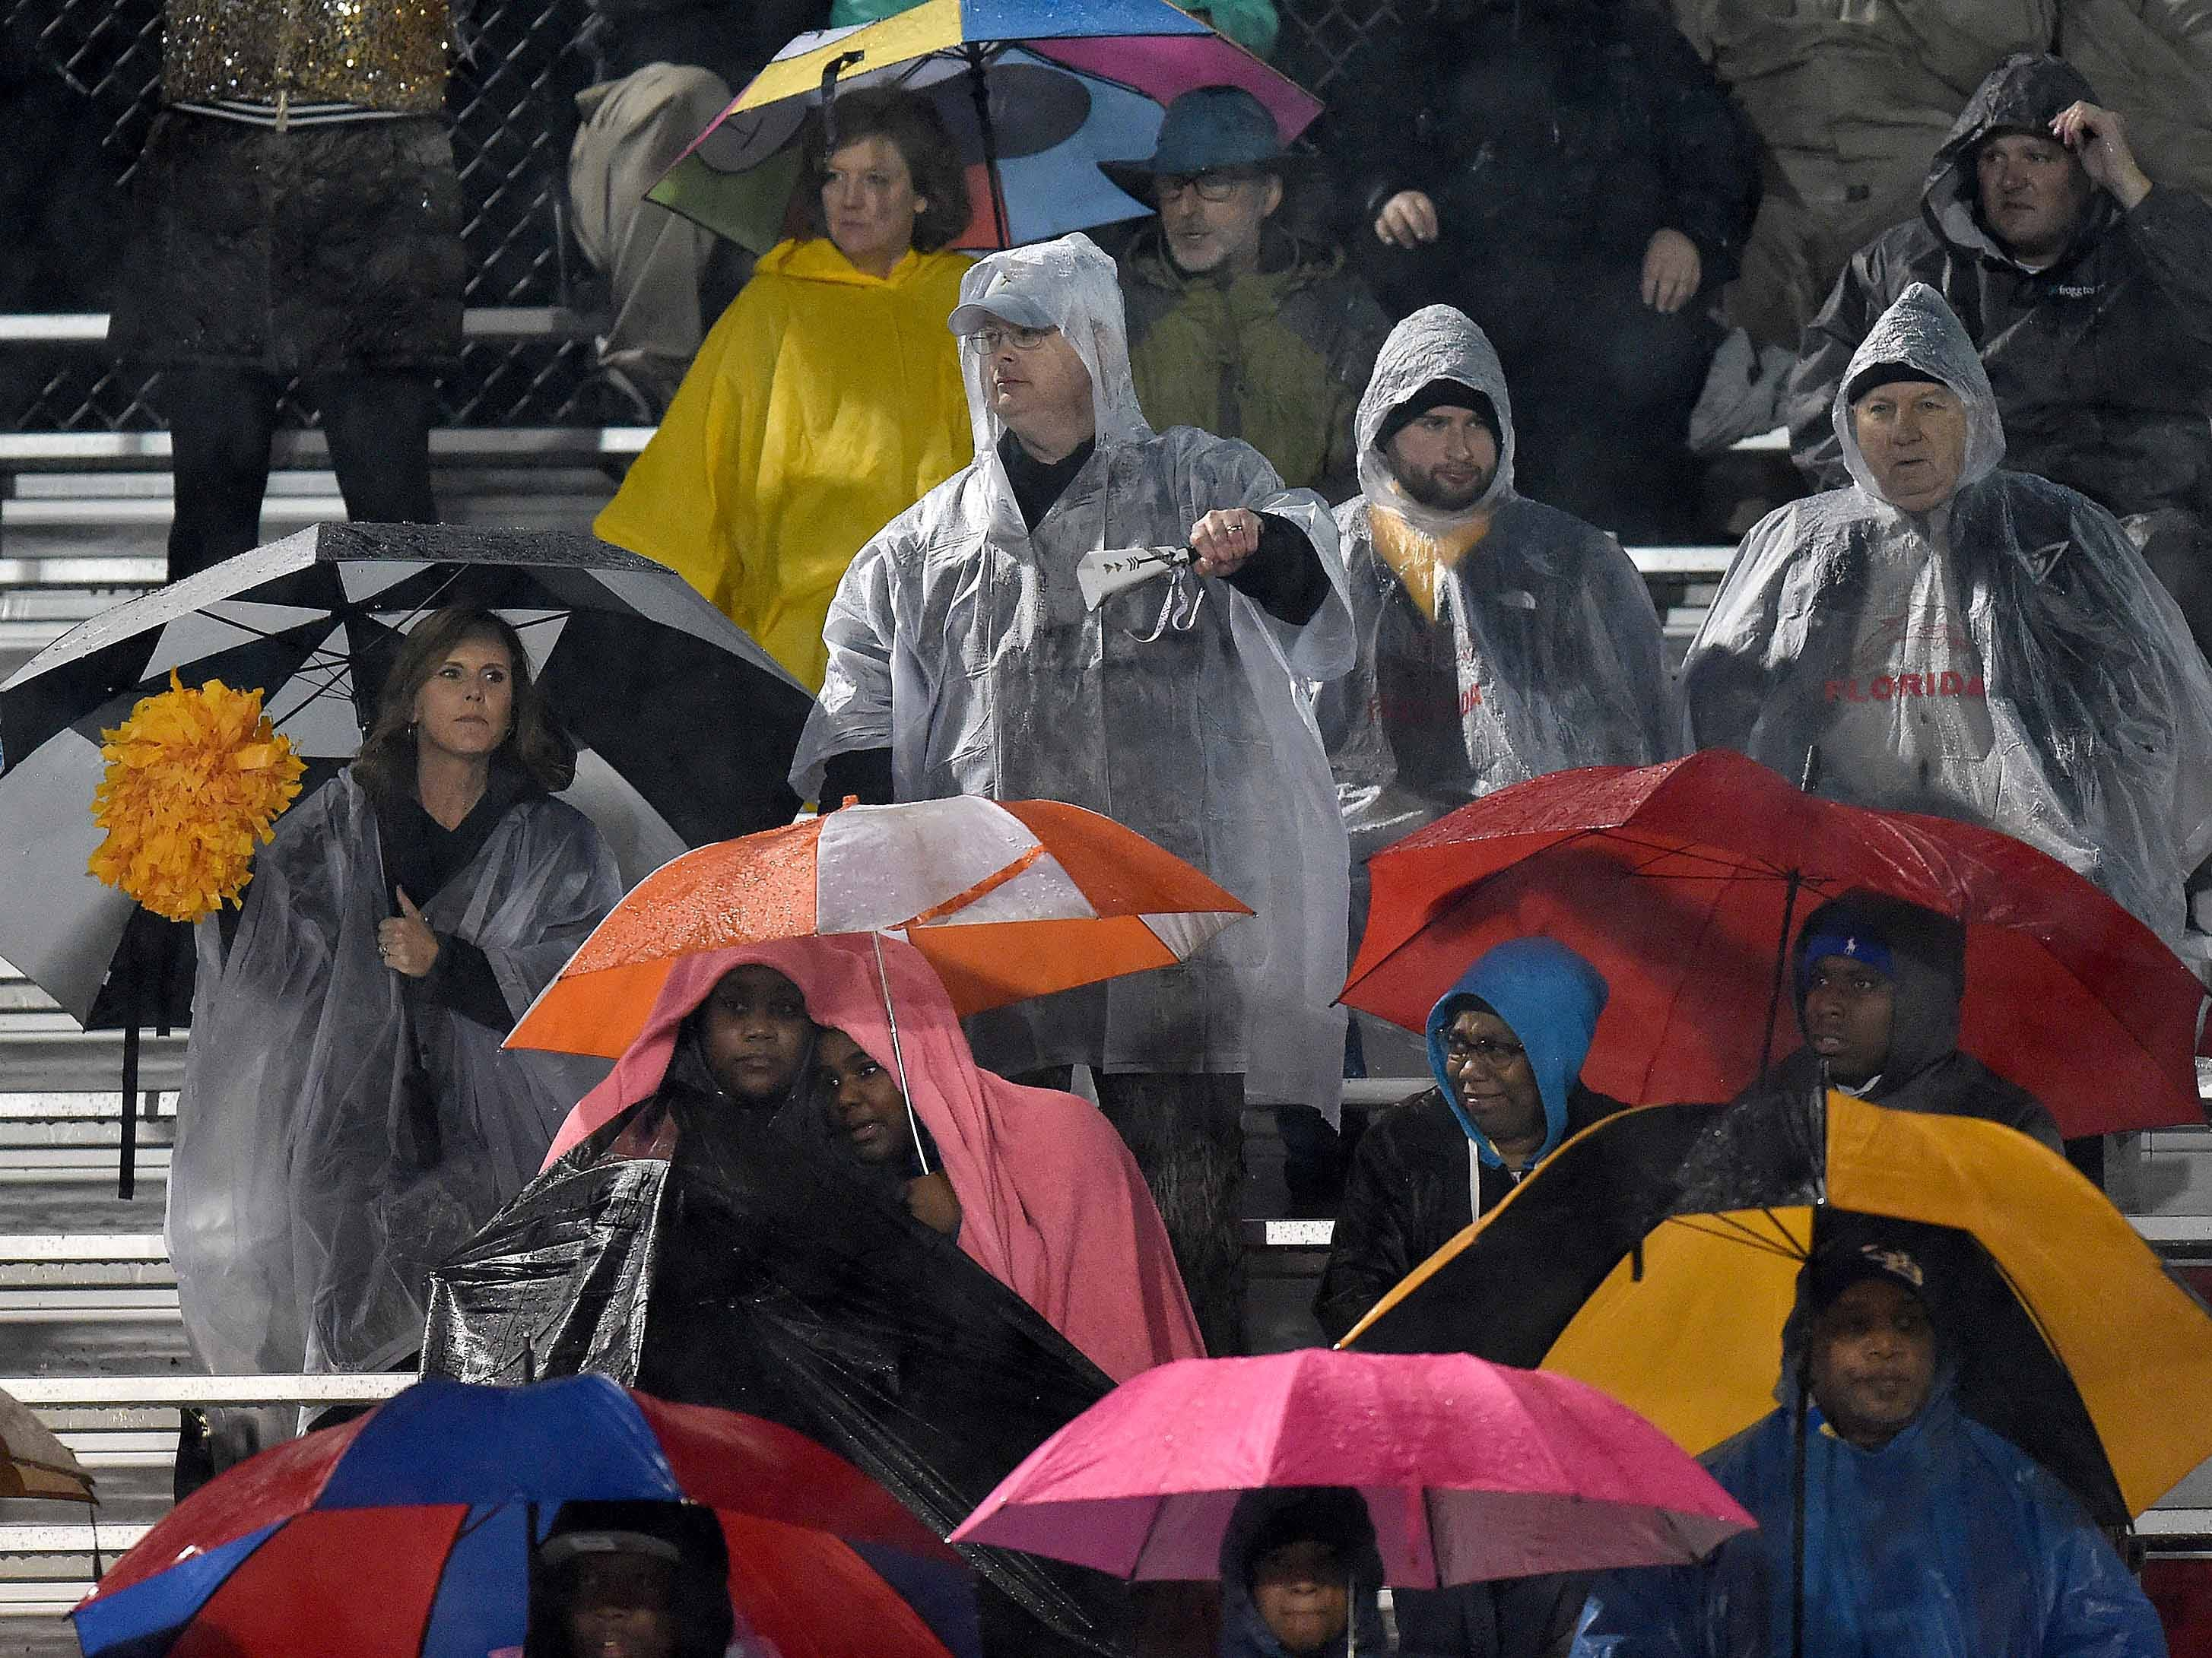 Oak Grove fans use umbrellas and rain gear early in the MHSAA Class 6A South State Championship on Friday, November 23, 2018, at Brandon High School in Brandon, Miss.